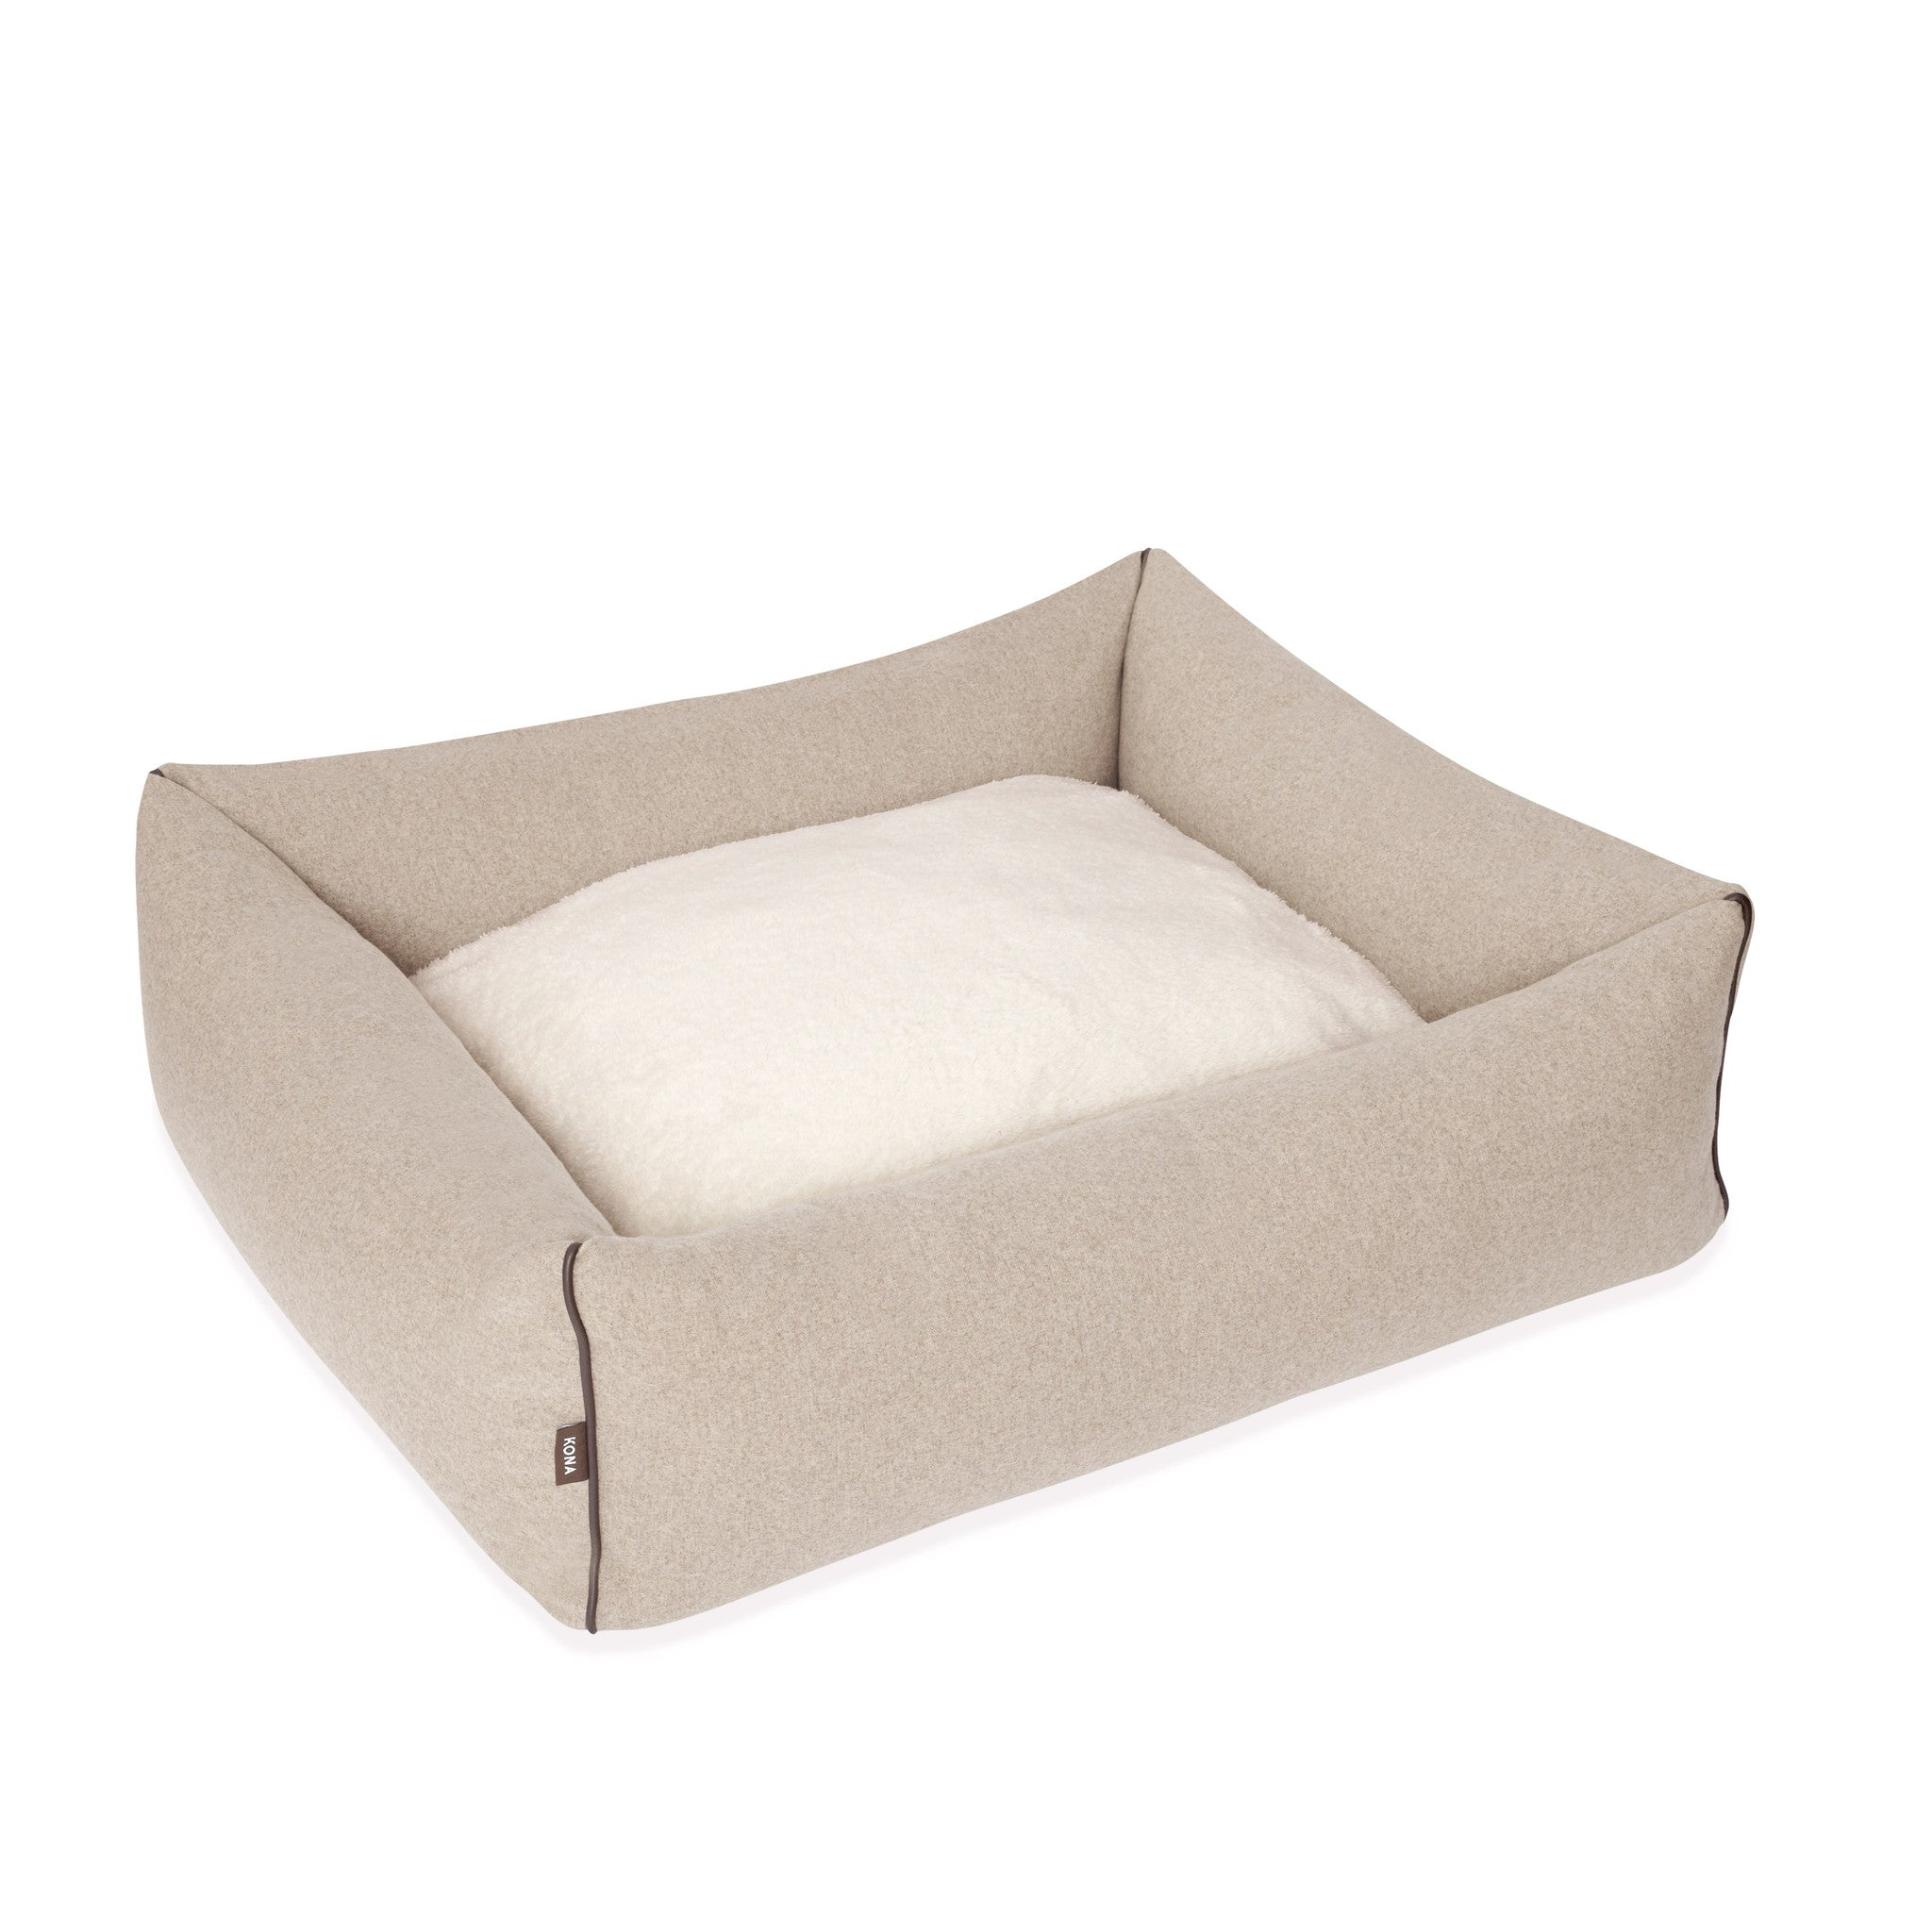 soft for warmth medium dog med removable fibre spray bone cover hand fully washable inner bed green red waterproof x or